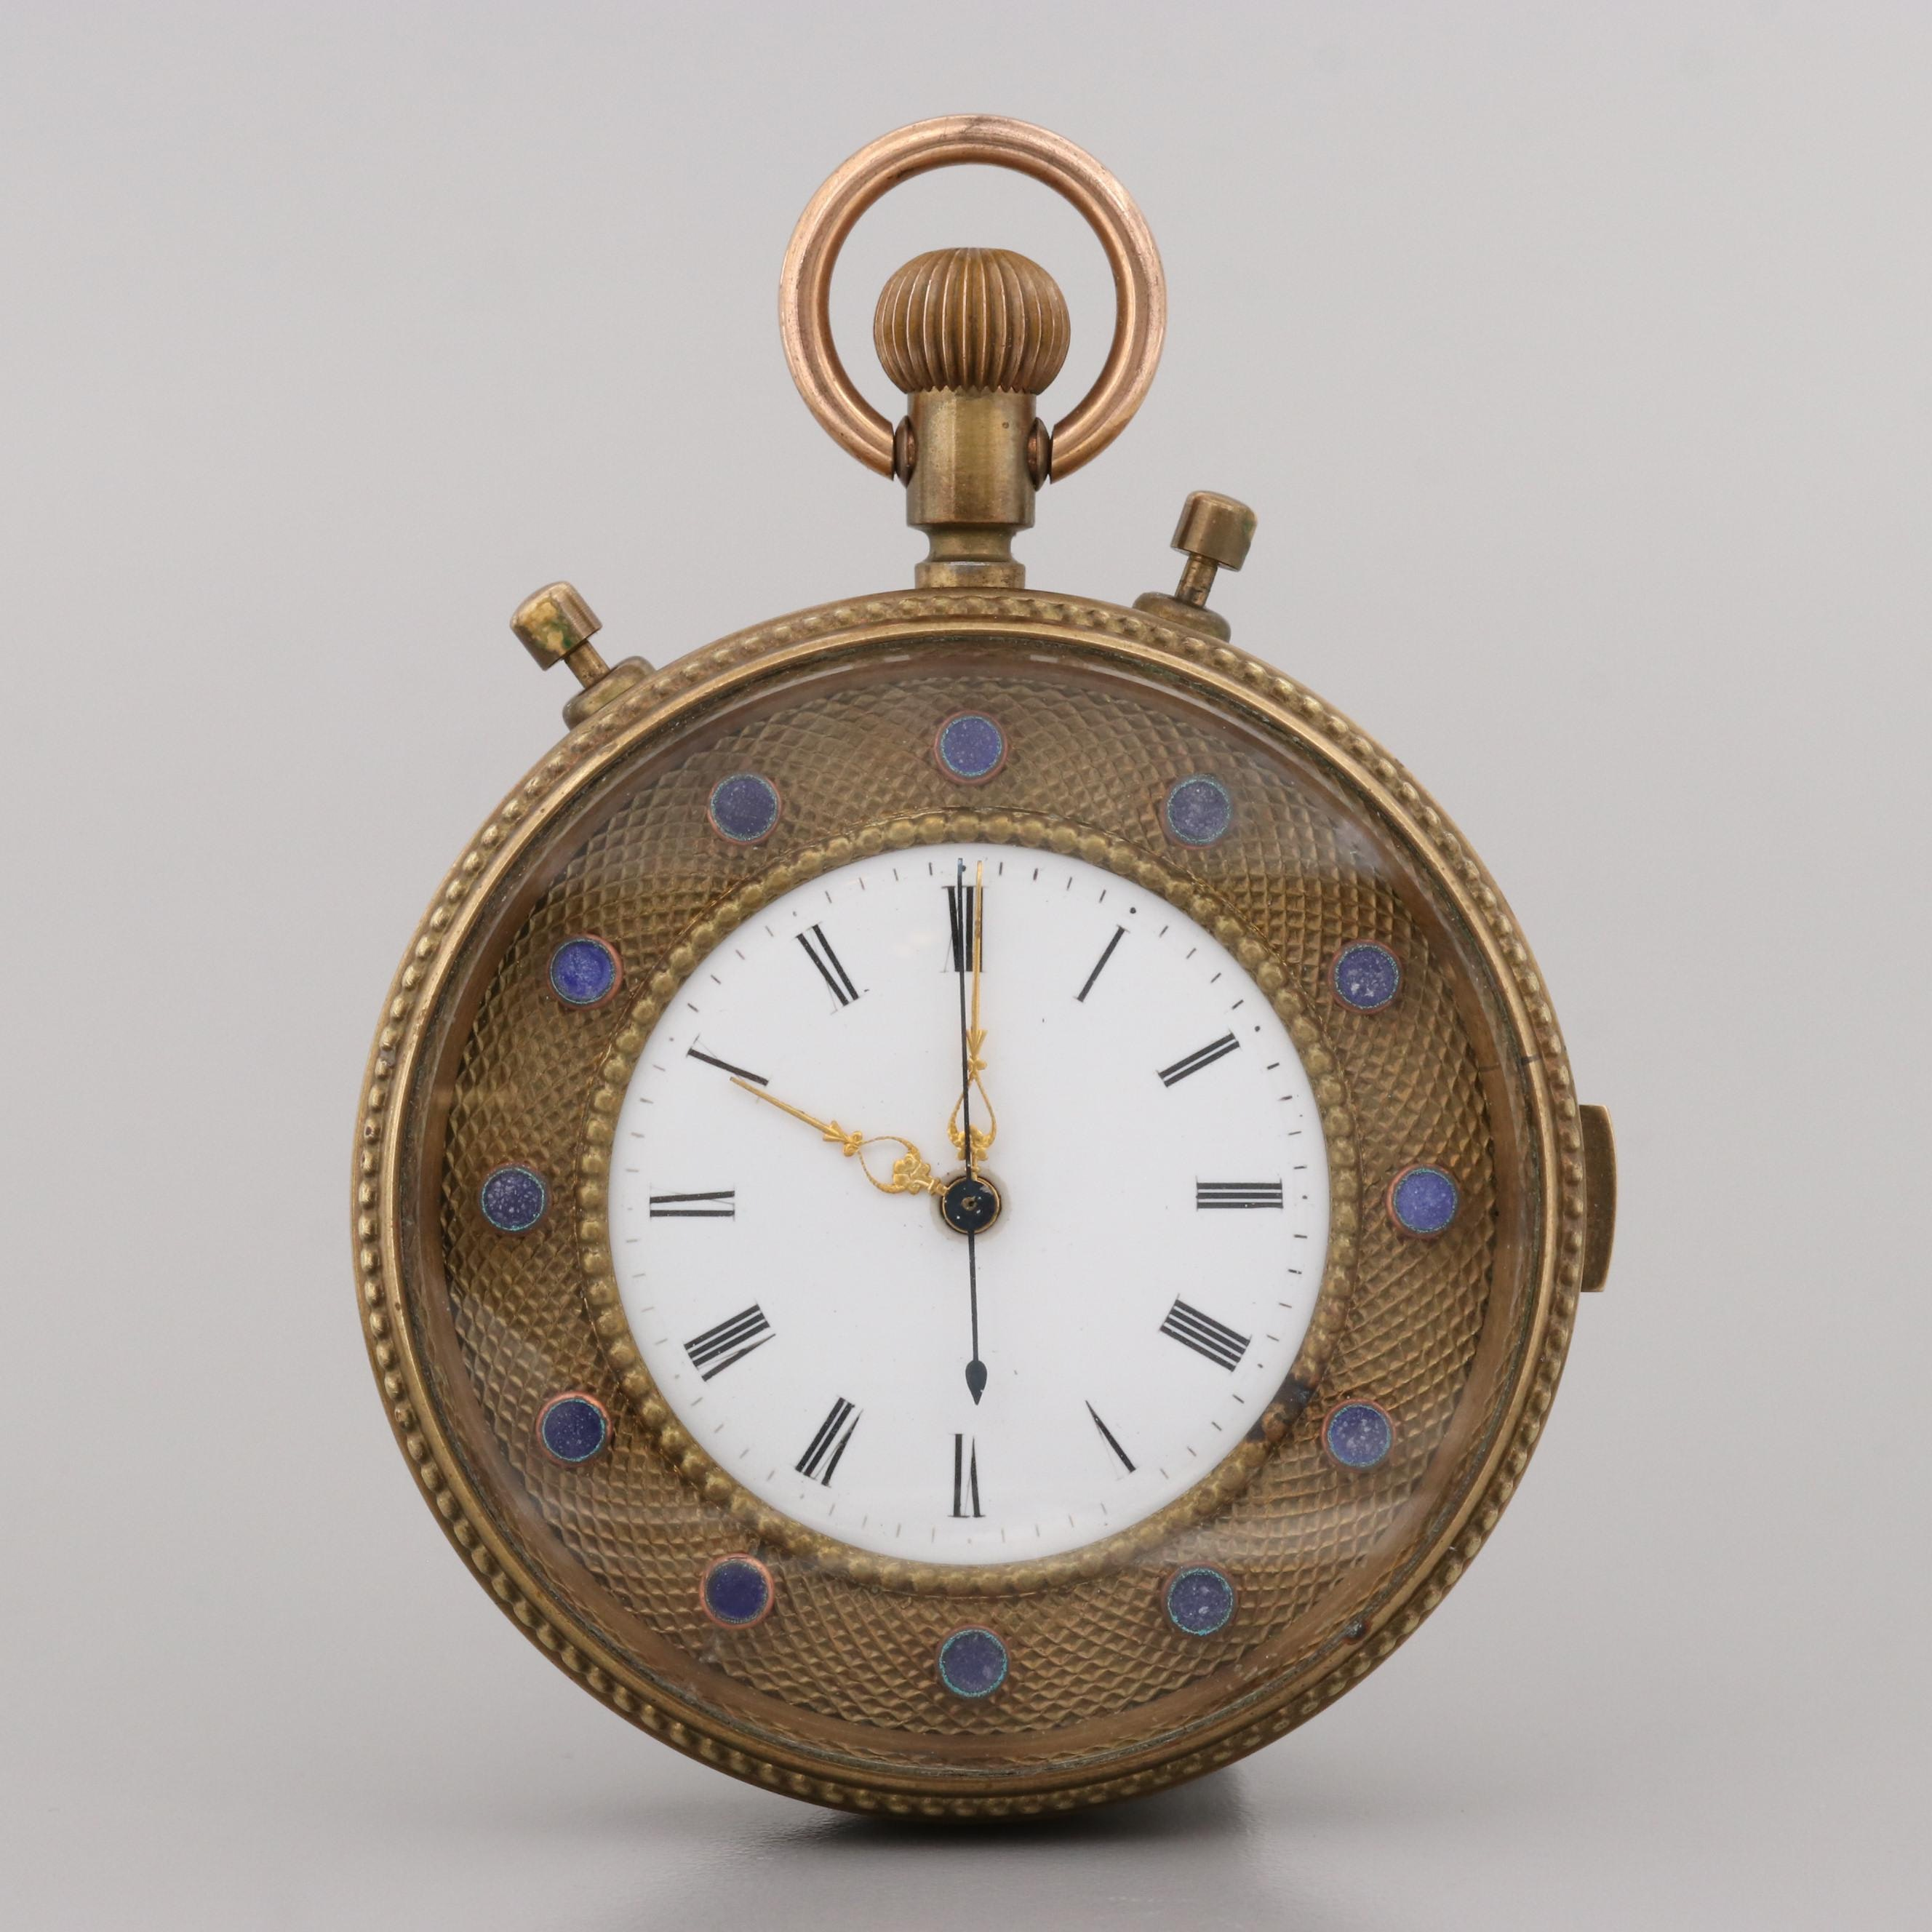 Brass and Enamel 1/4 Repeater Chronograph Pocket Watch